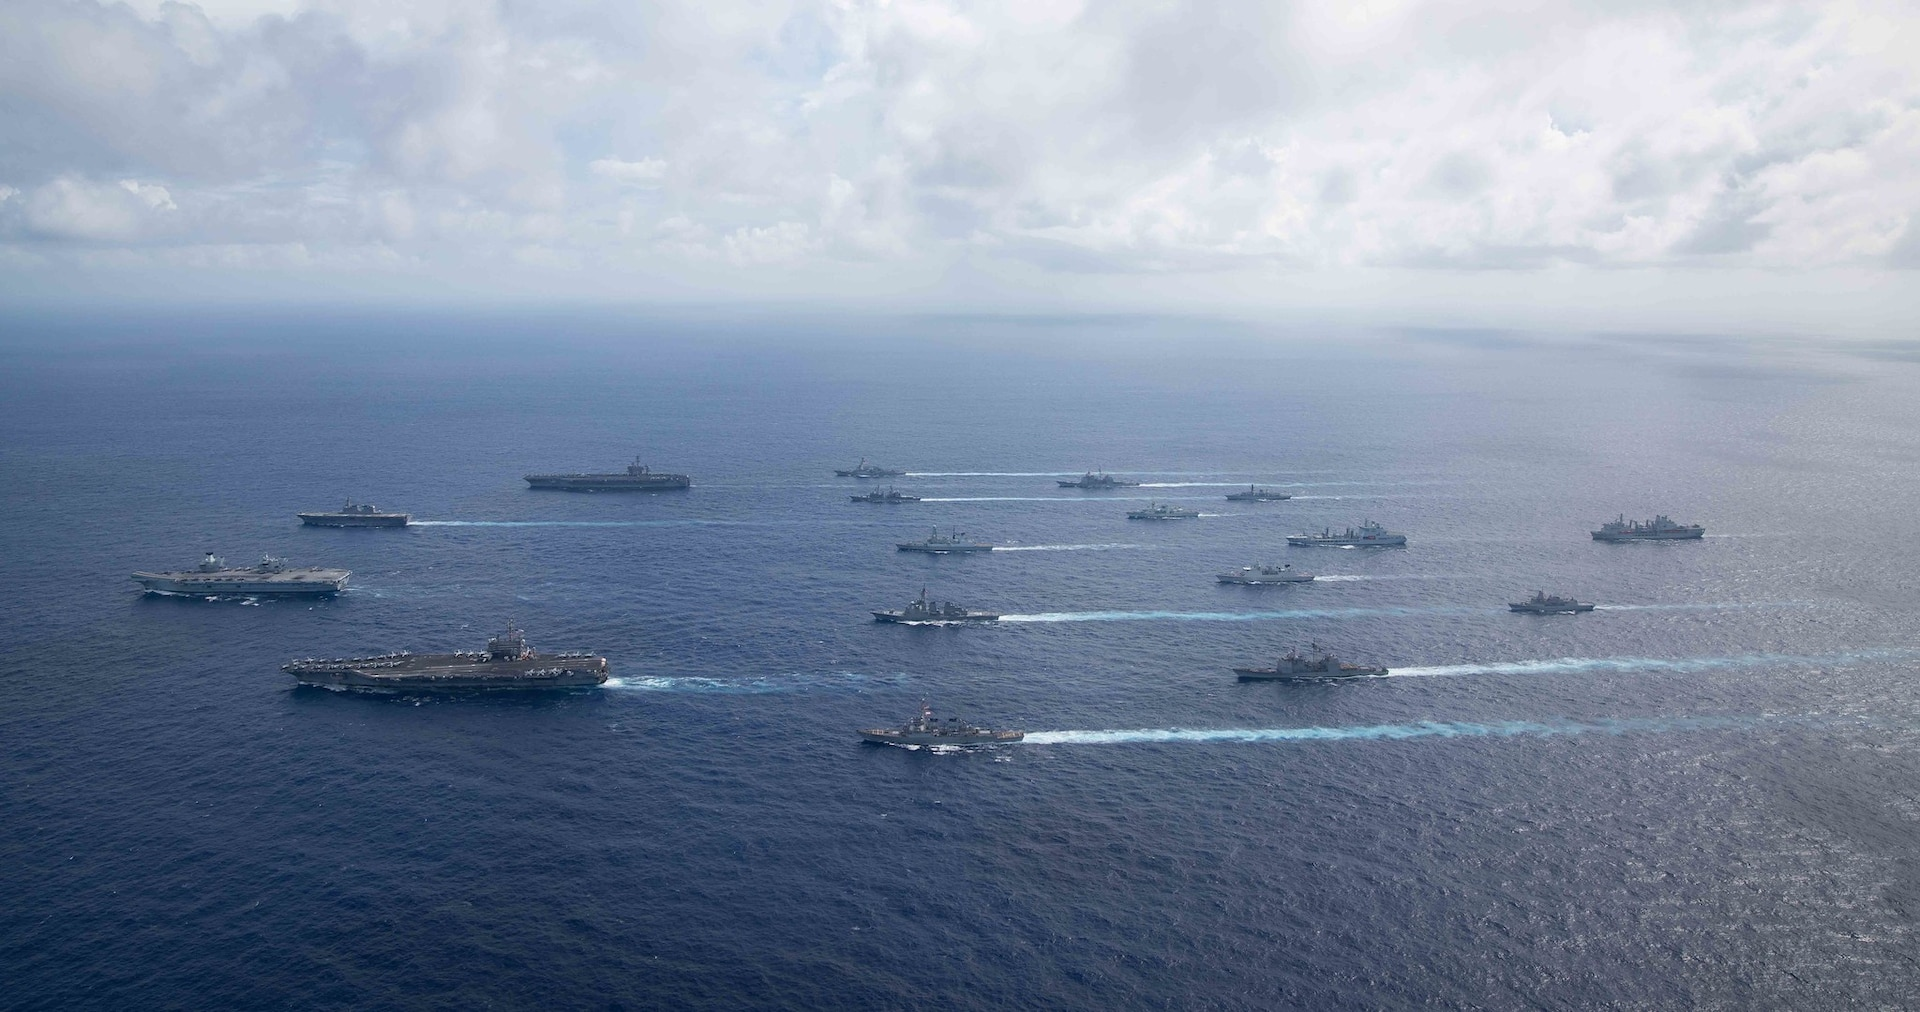 Multiple allied carrier strike groups operate together in 7th Fleet